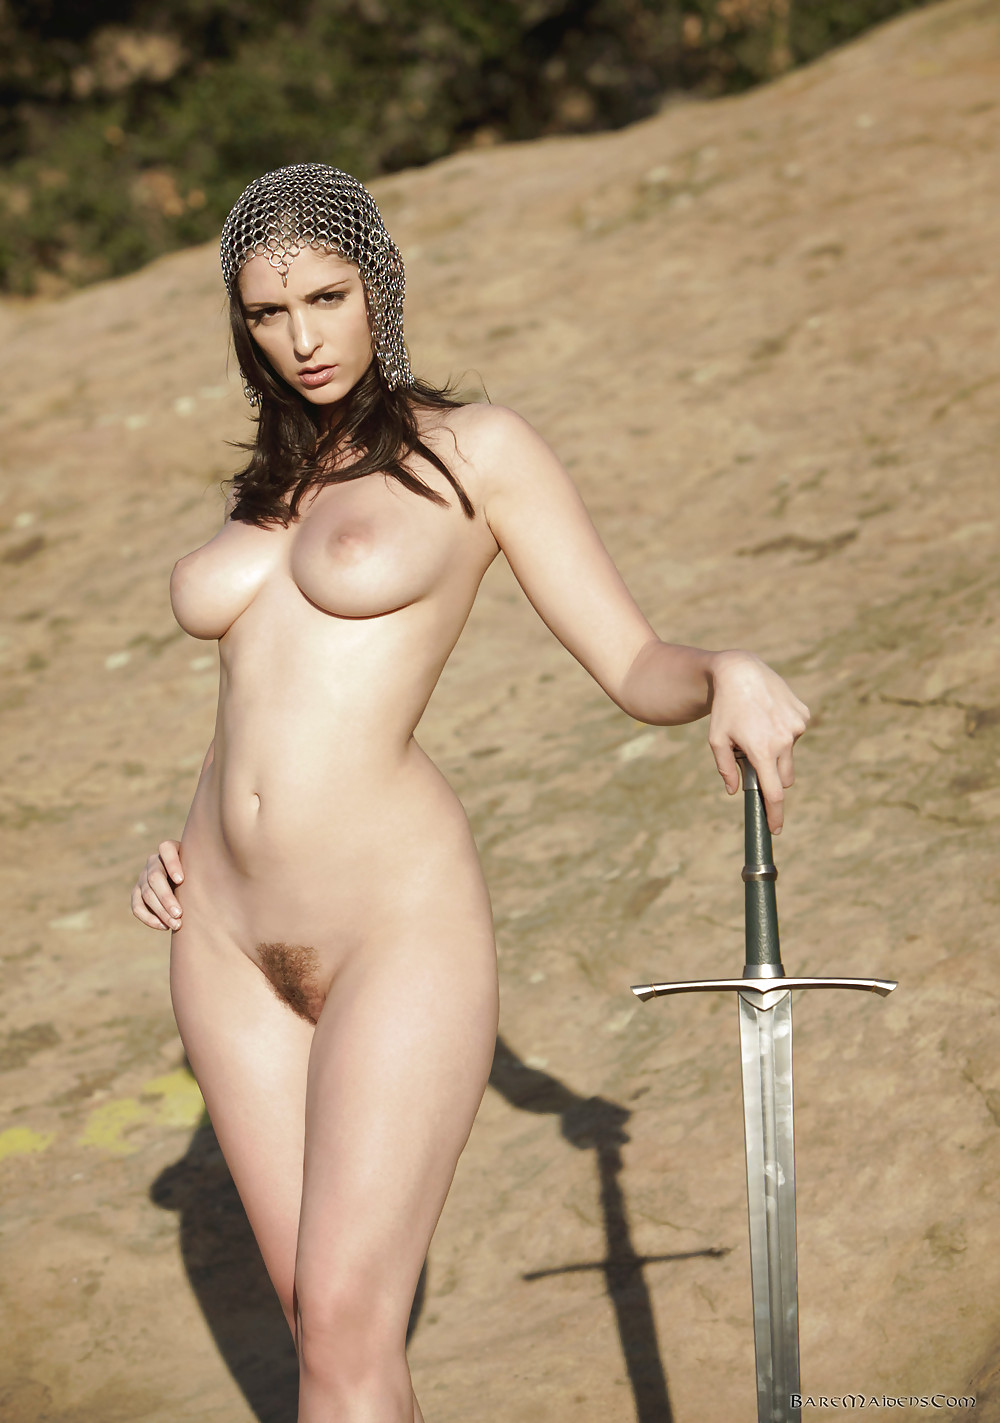 Amazon women warriors nude